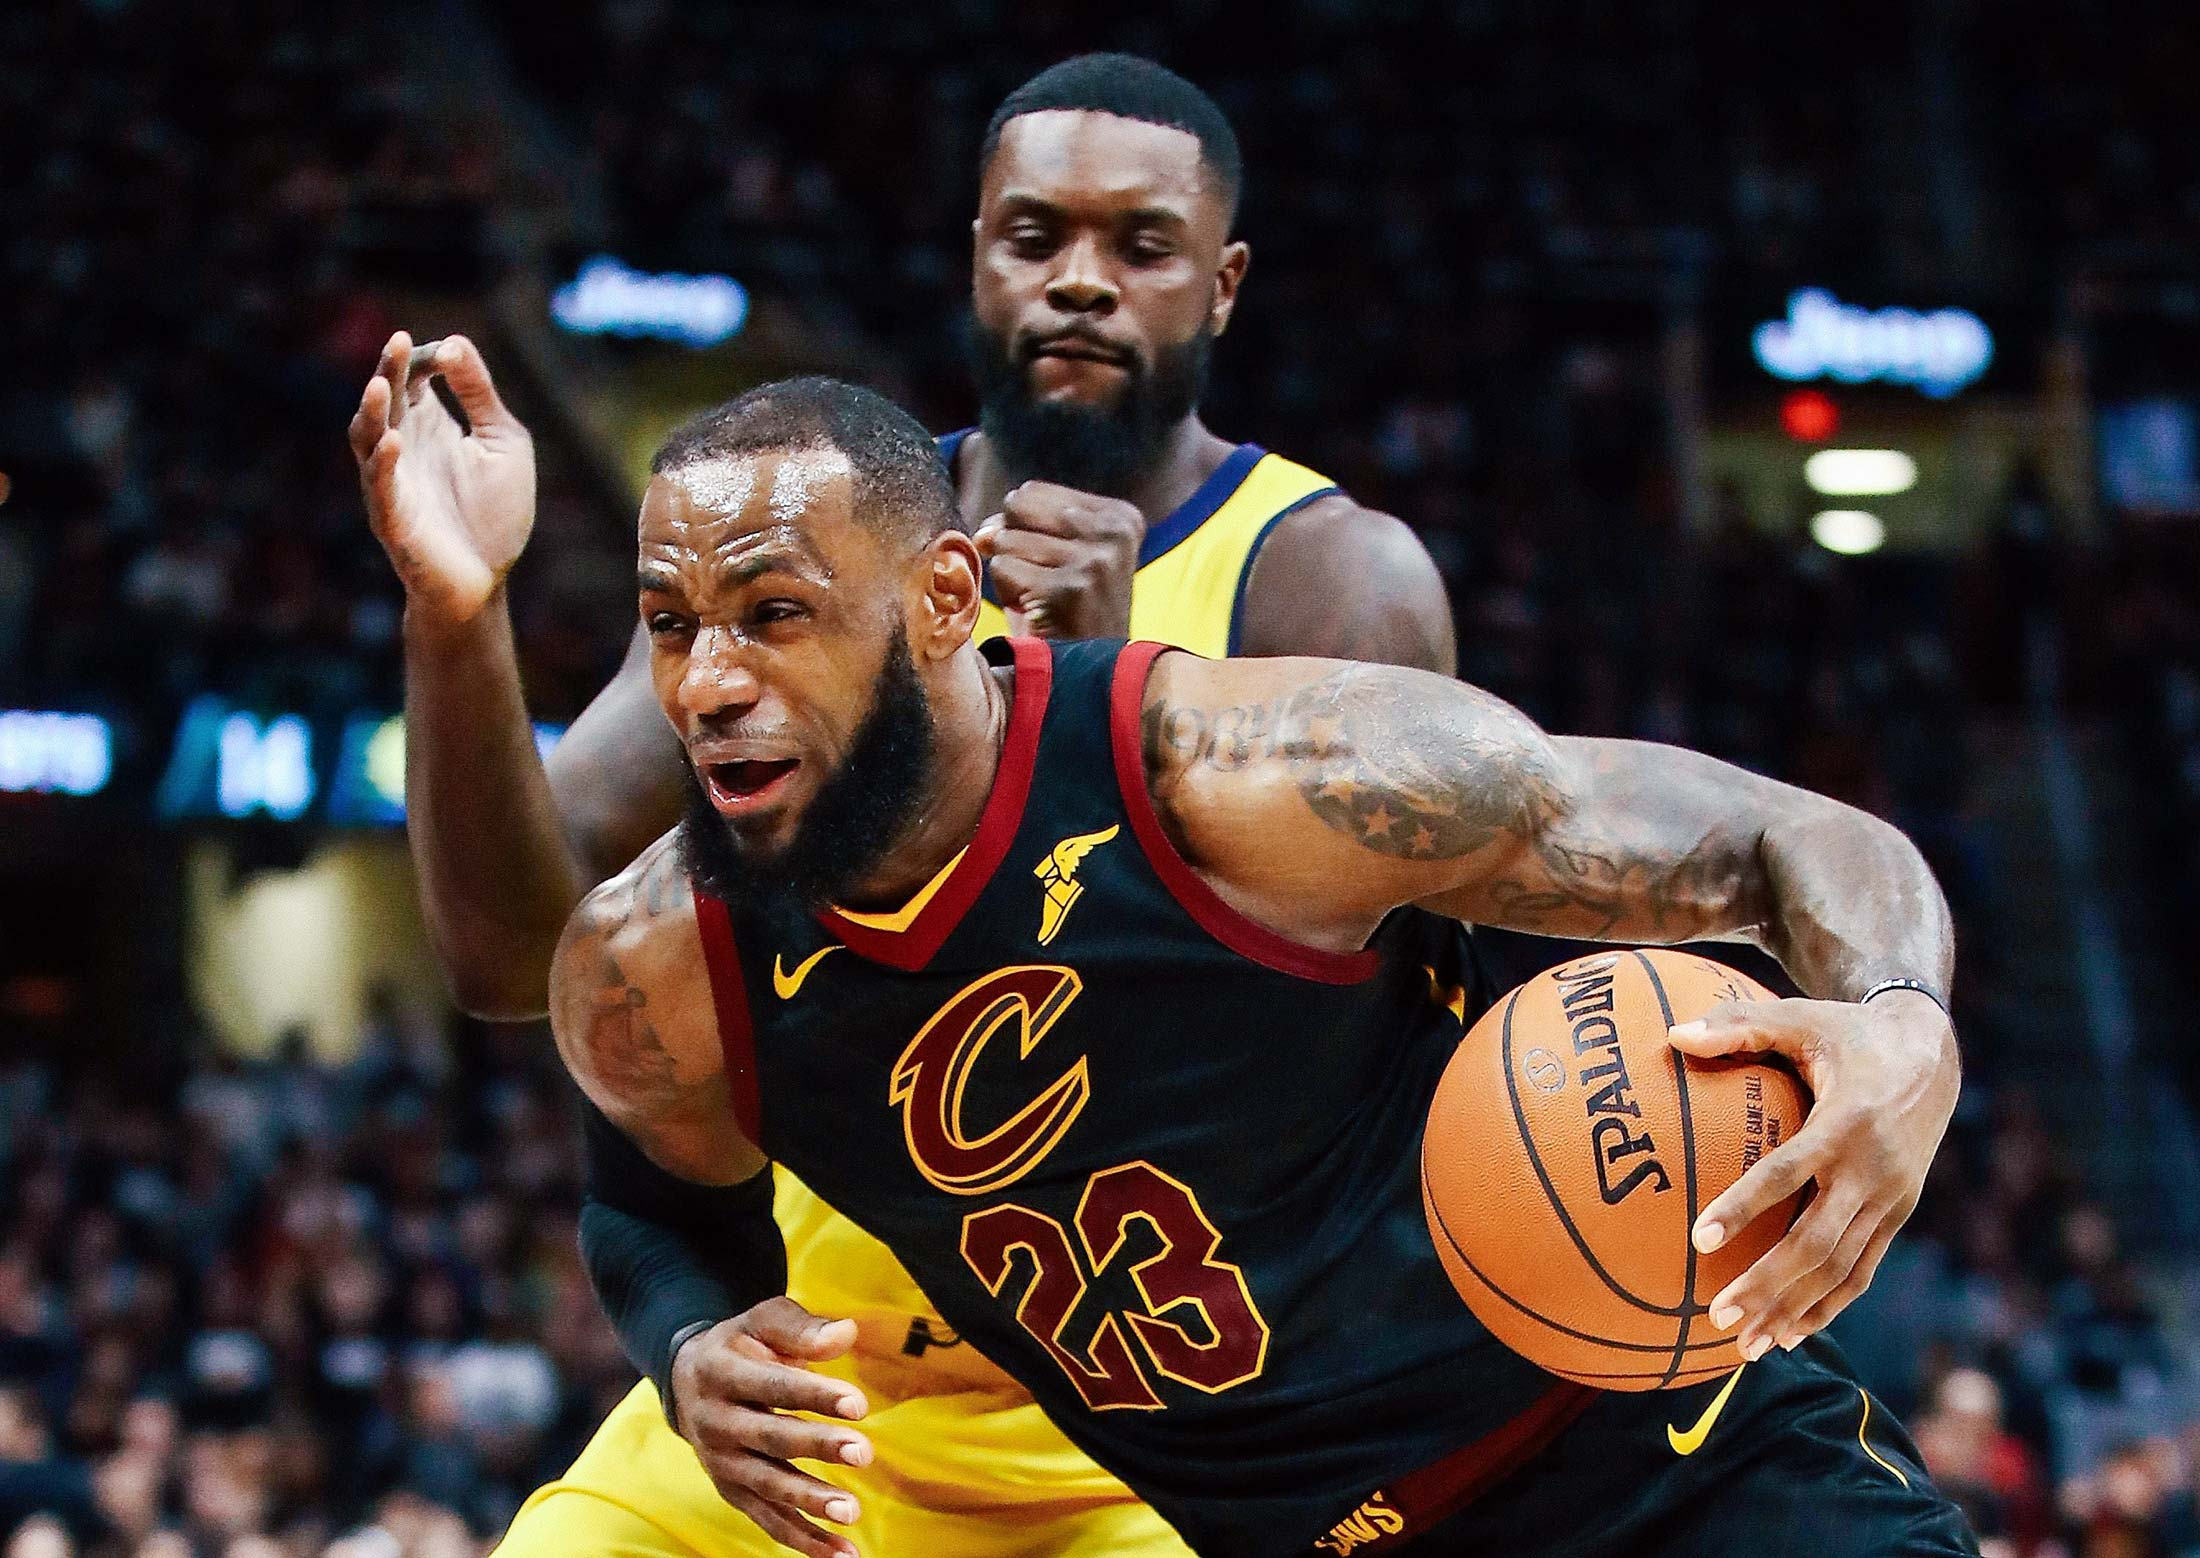 LeBron James #23 of the Cleveland Cavaliers drives past Lance Stephenson #1 of the Indiana Pacers during the second half in Game One of the Eastern Conference Quarterfinals during the 2018 NBA Playoffs at Quicken Loans Arena on April 15, 2018 in Cleveland, Ohio.